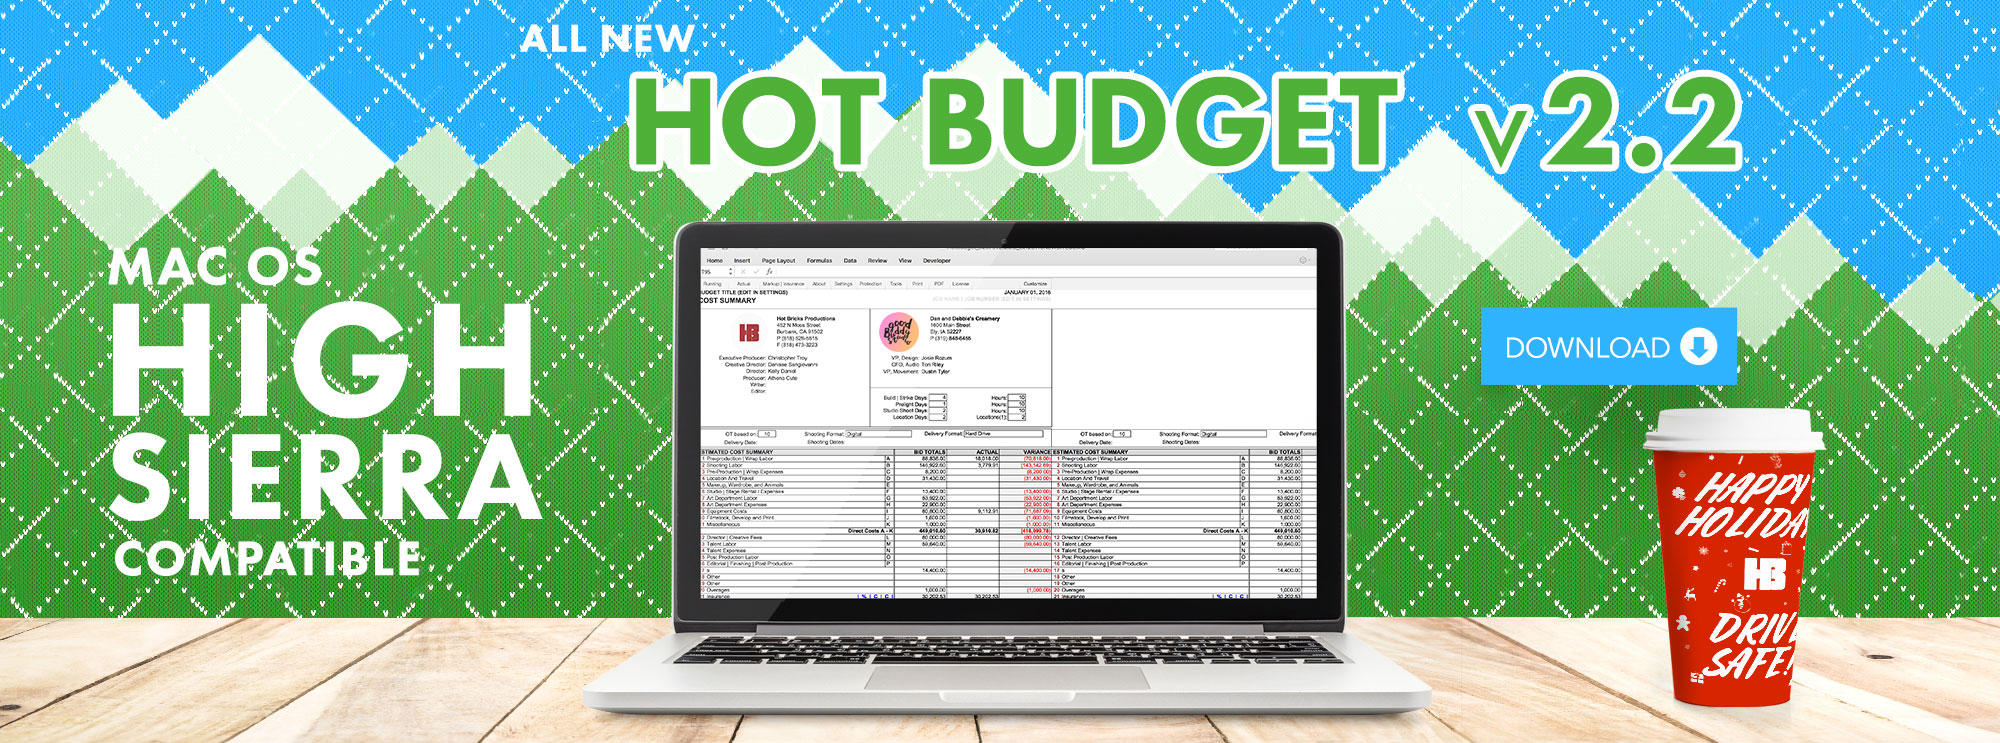 New Version Hot Budget v2.2